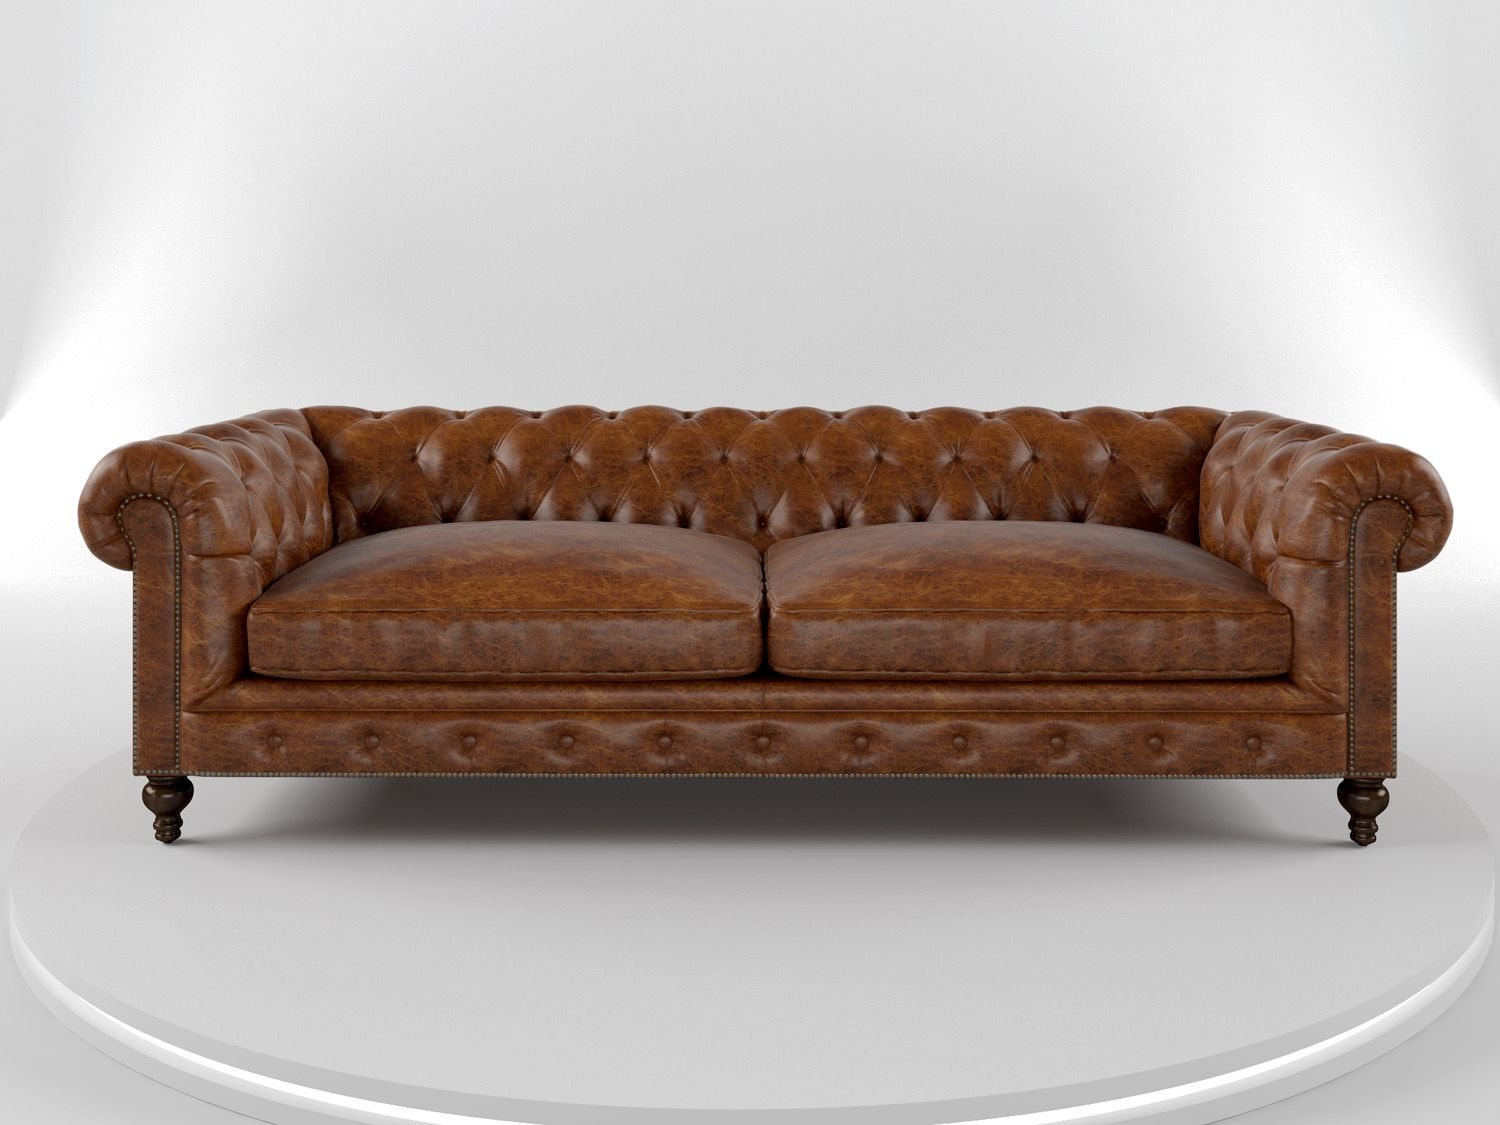 leather sofa covers ready made uk how do i get rid of bed bugs in my chesterfield showroom